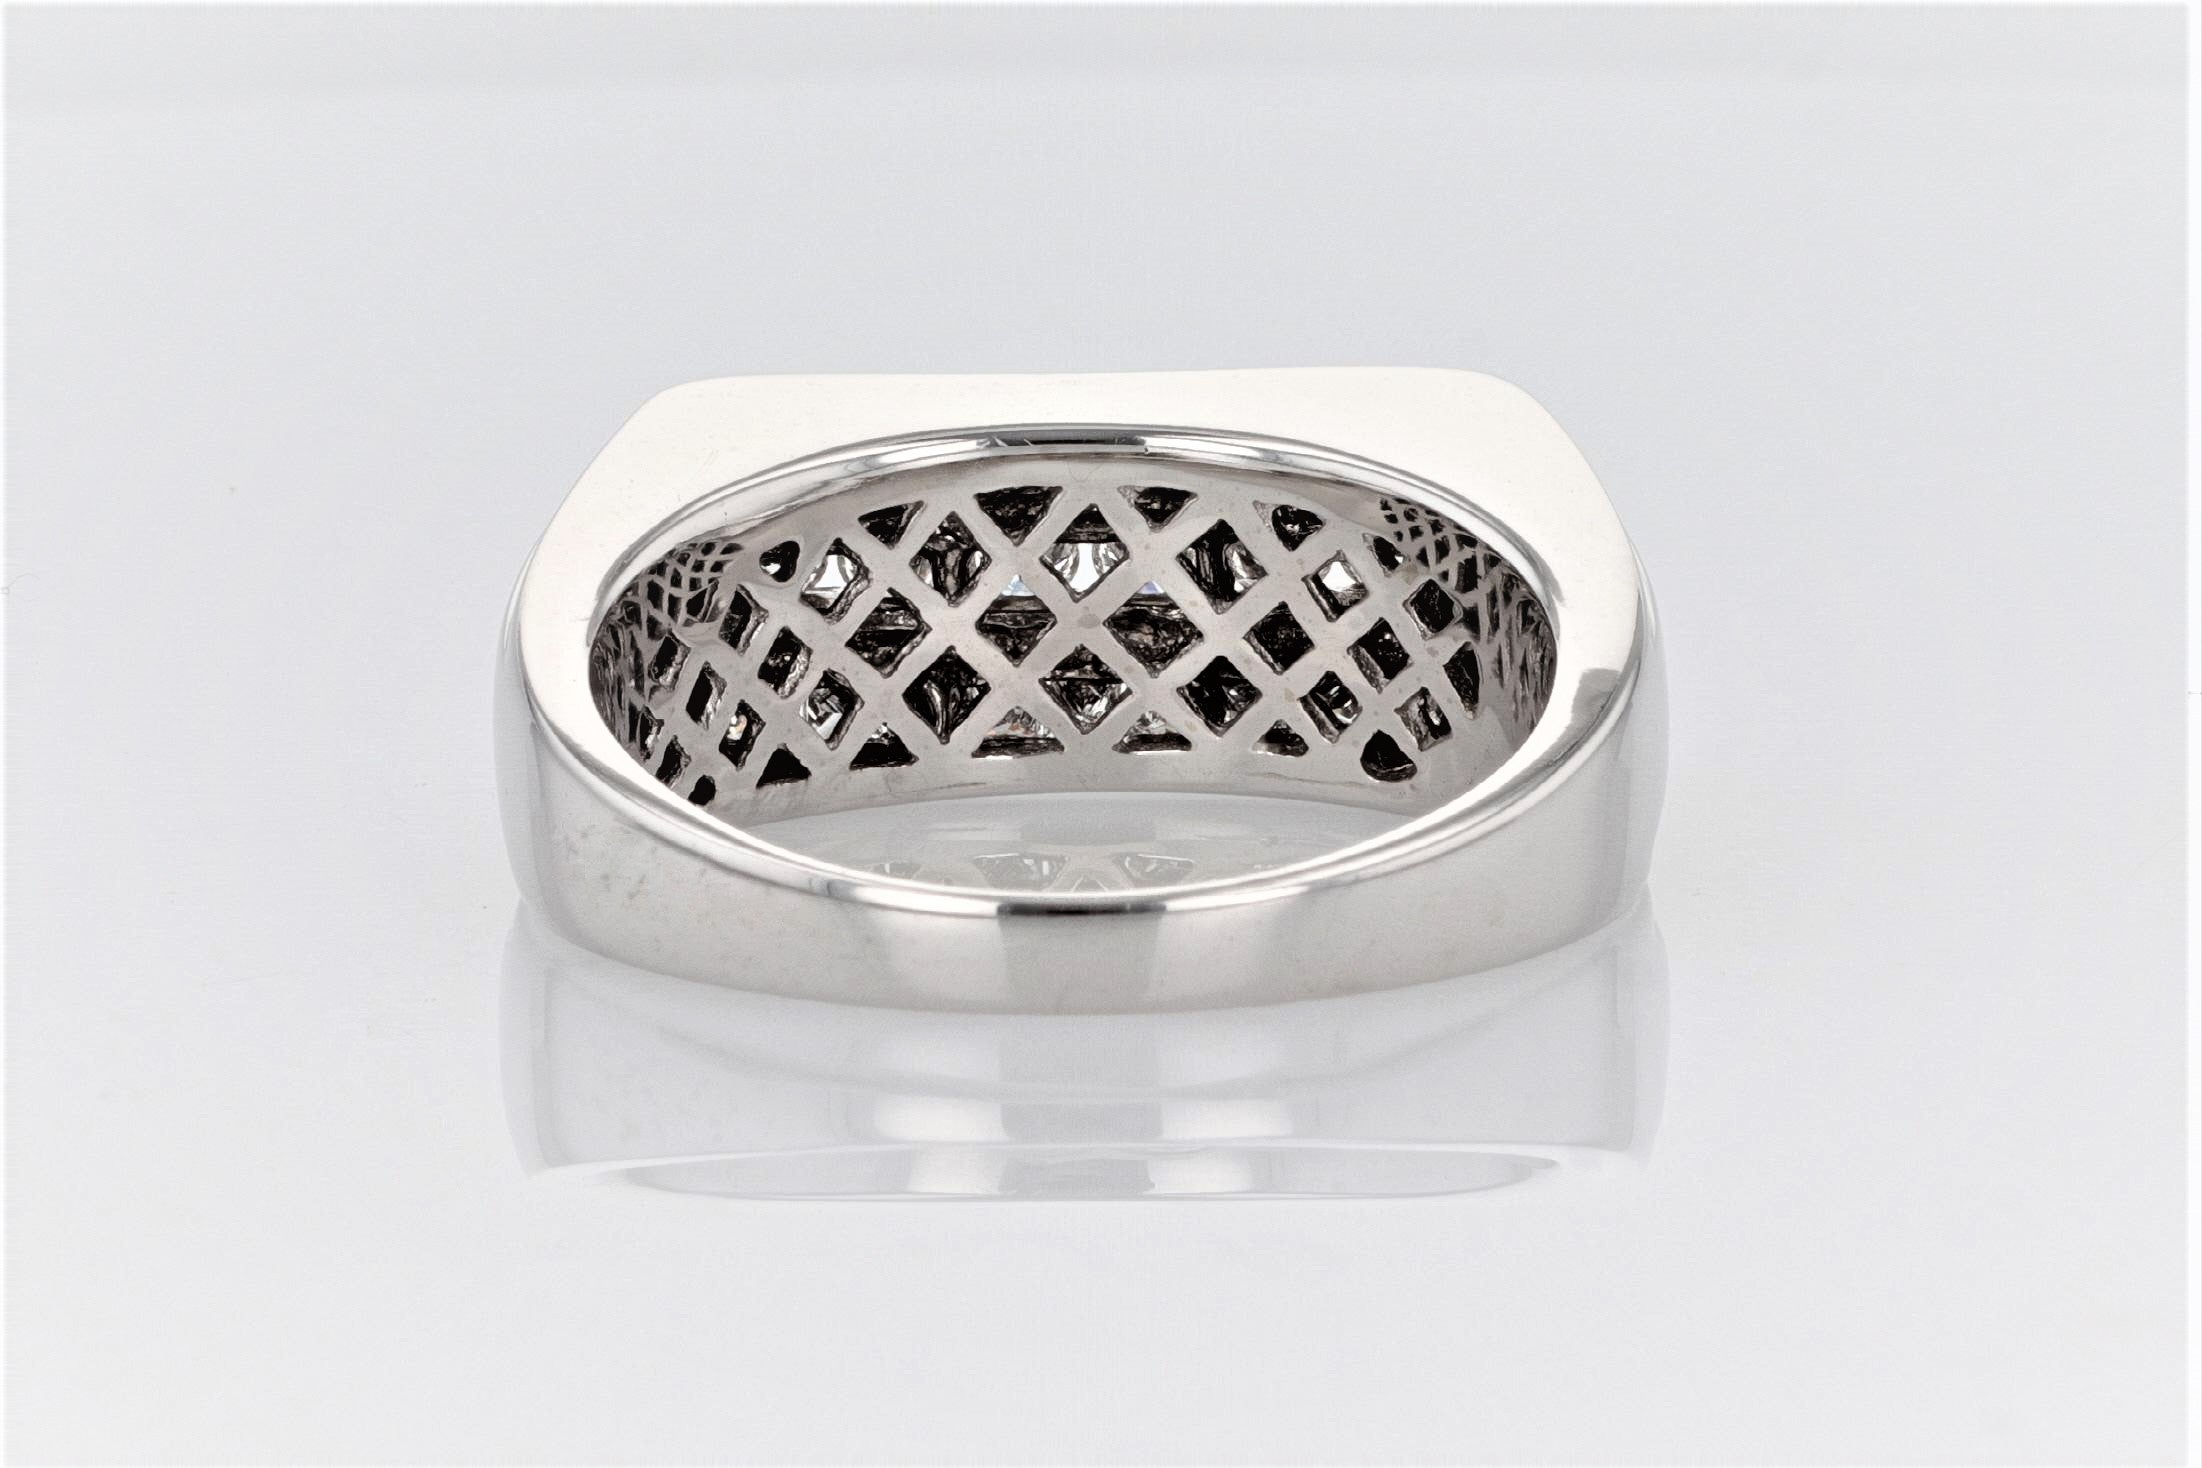 14K Men's White Gold (Stamped) Shank Dress Ring